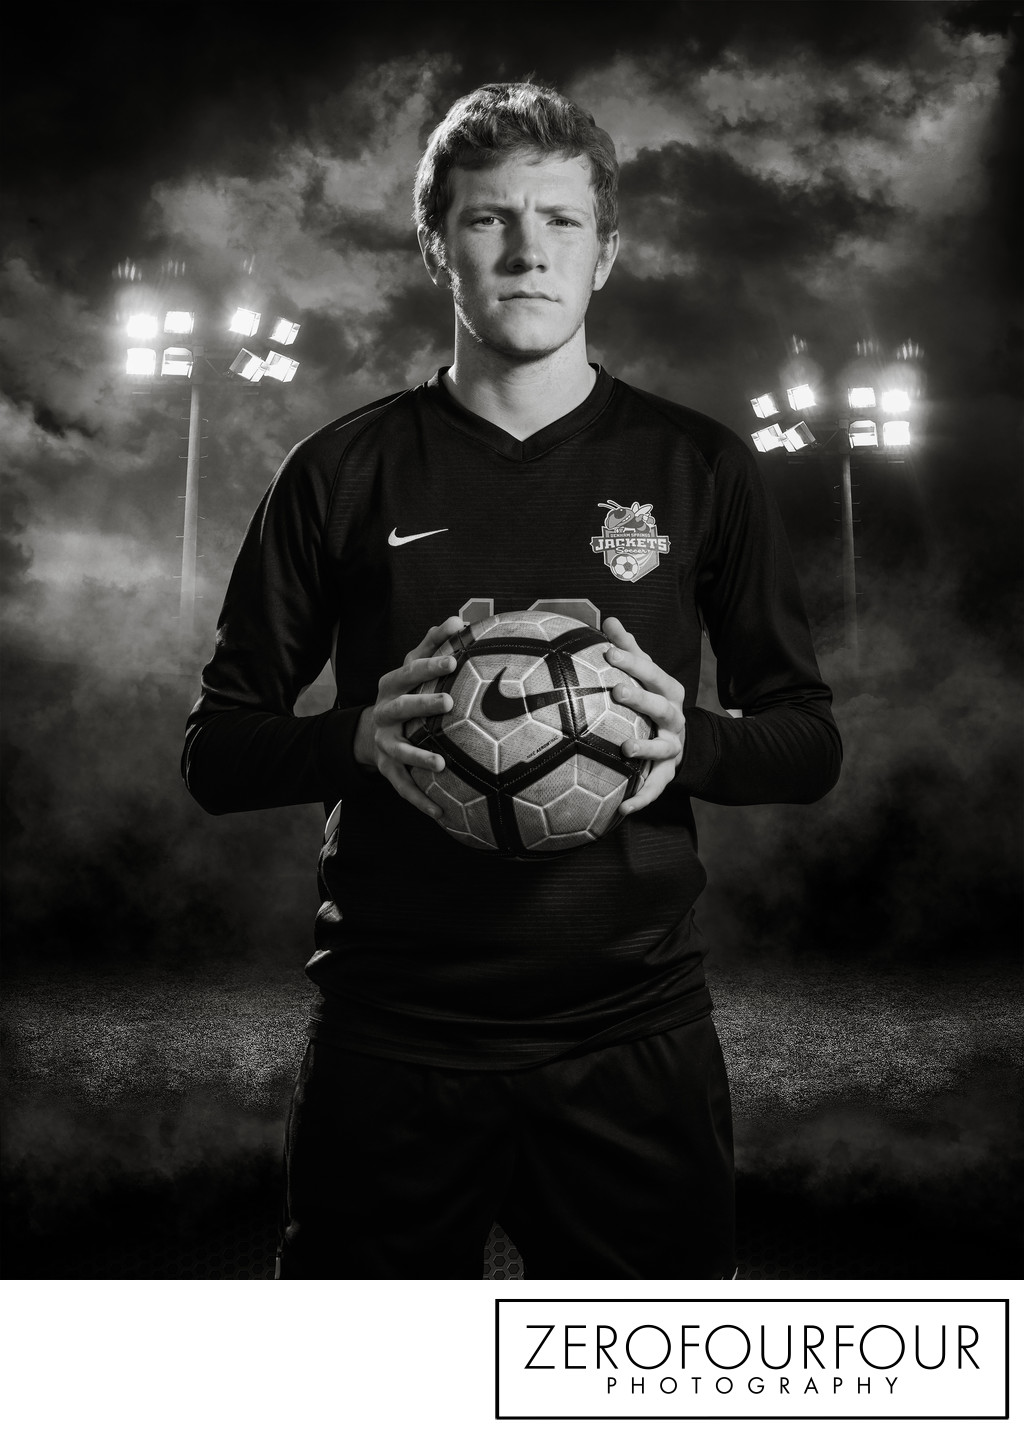 Black and white dramatic sports player portrait